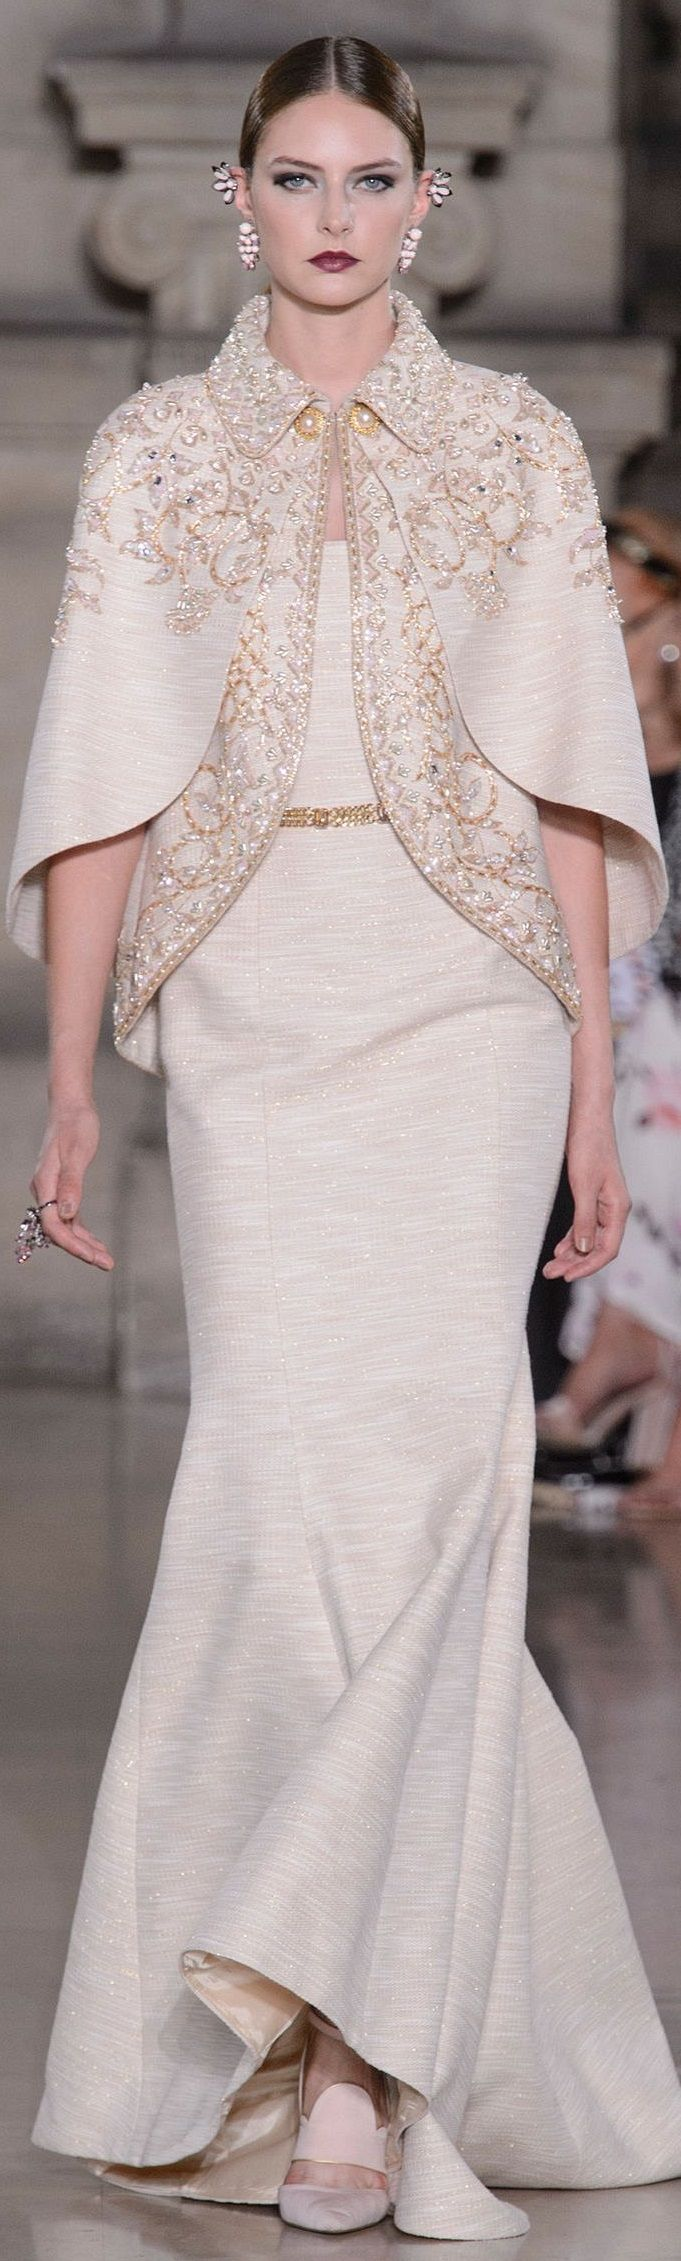 Georges Hobeika Fall 2017 Couture